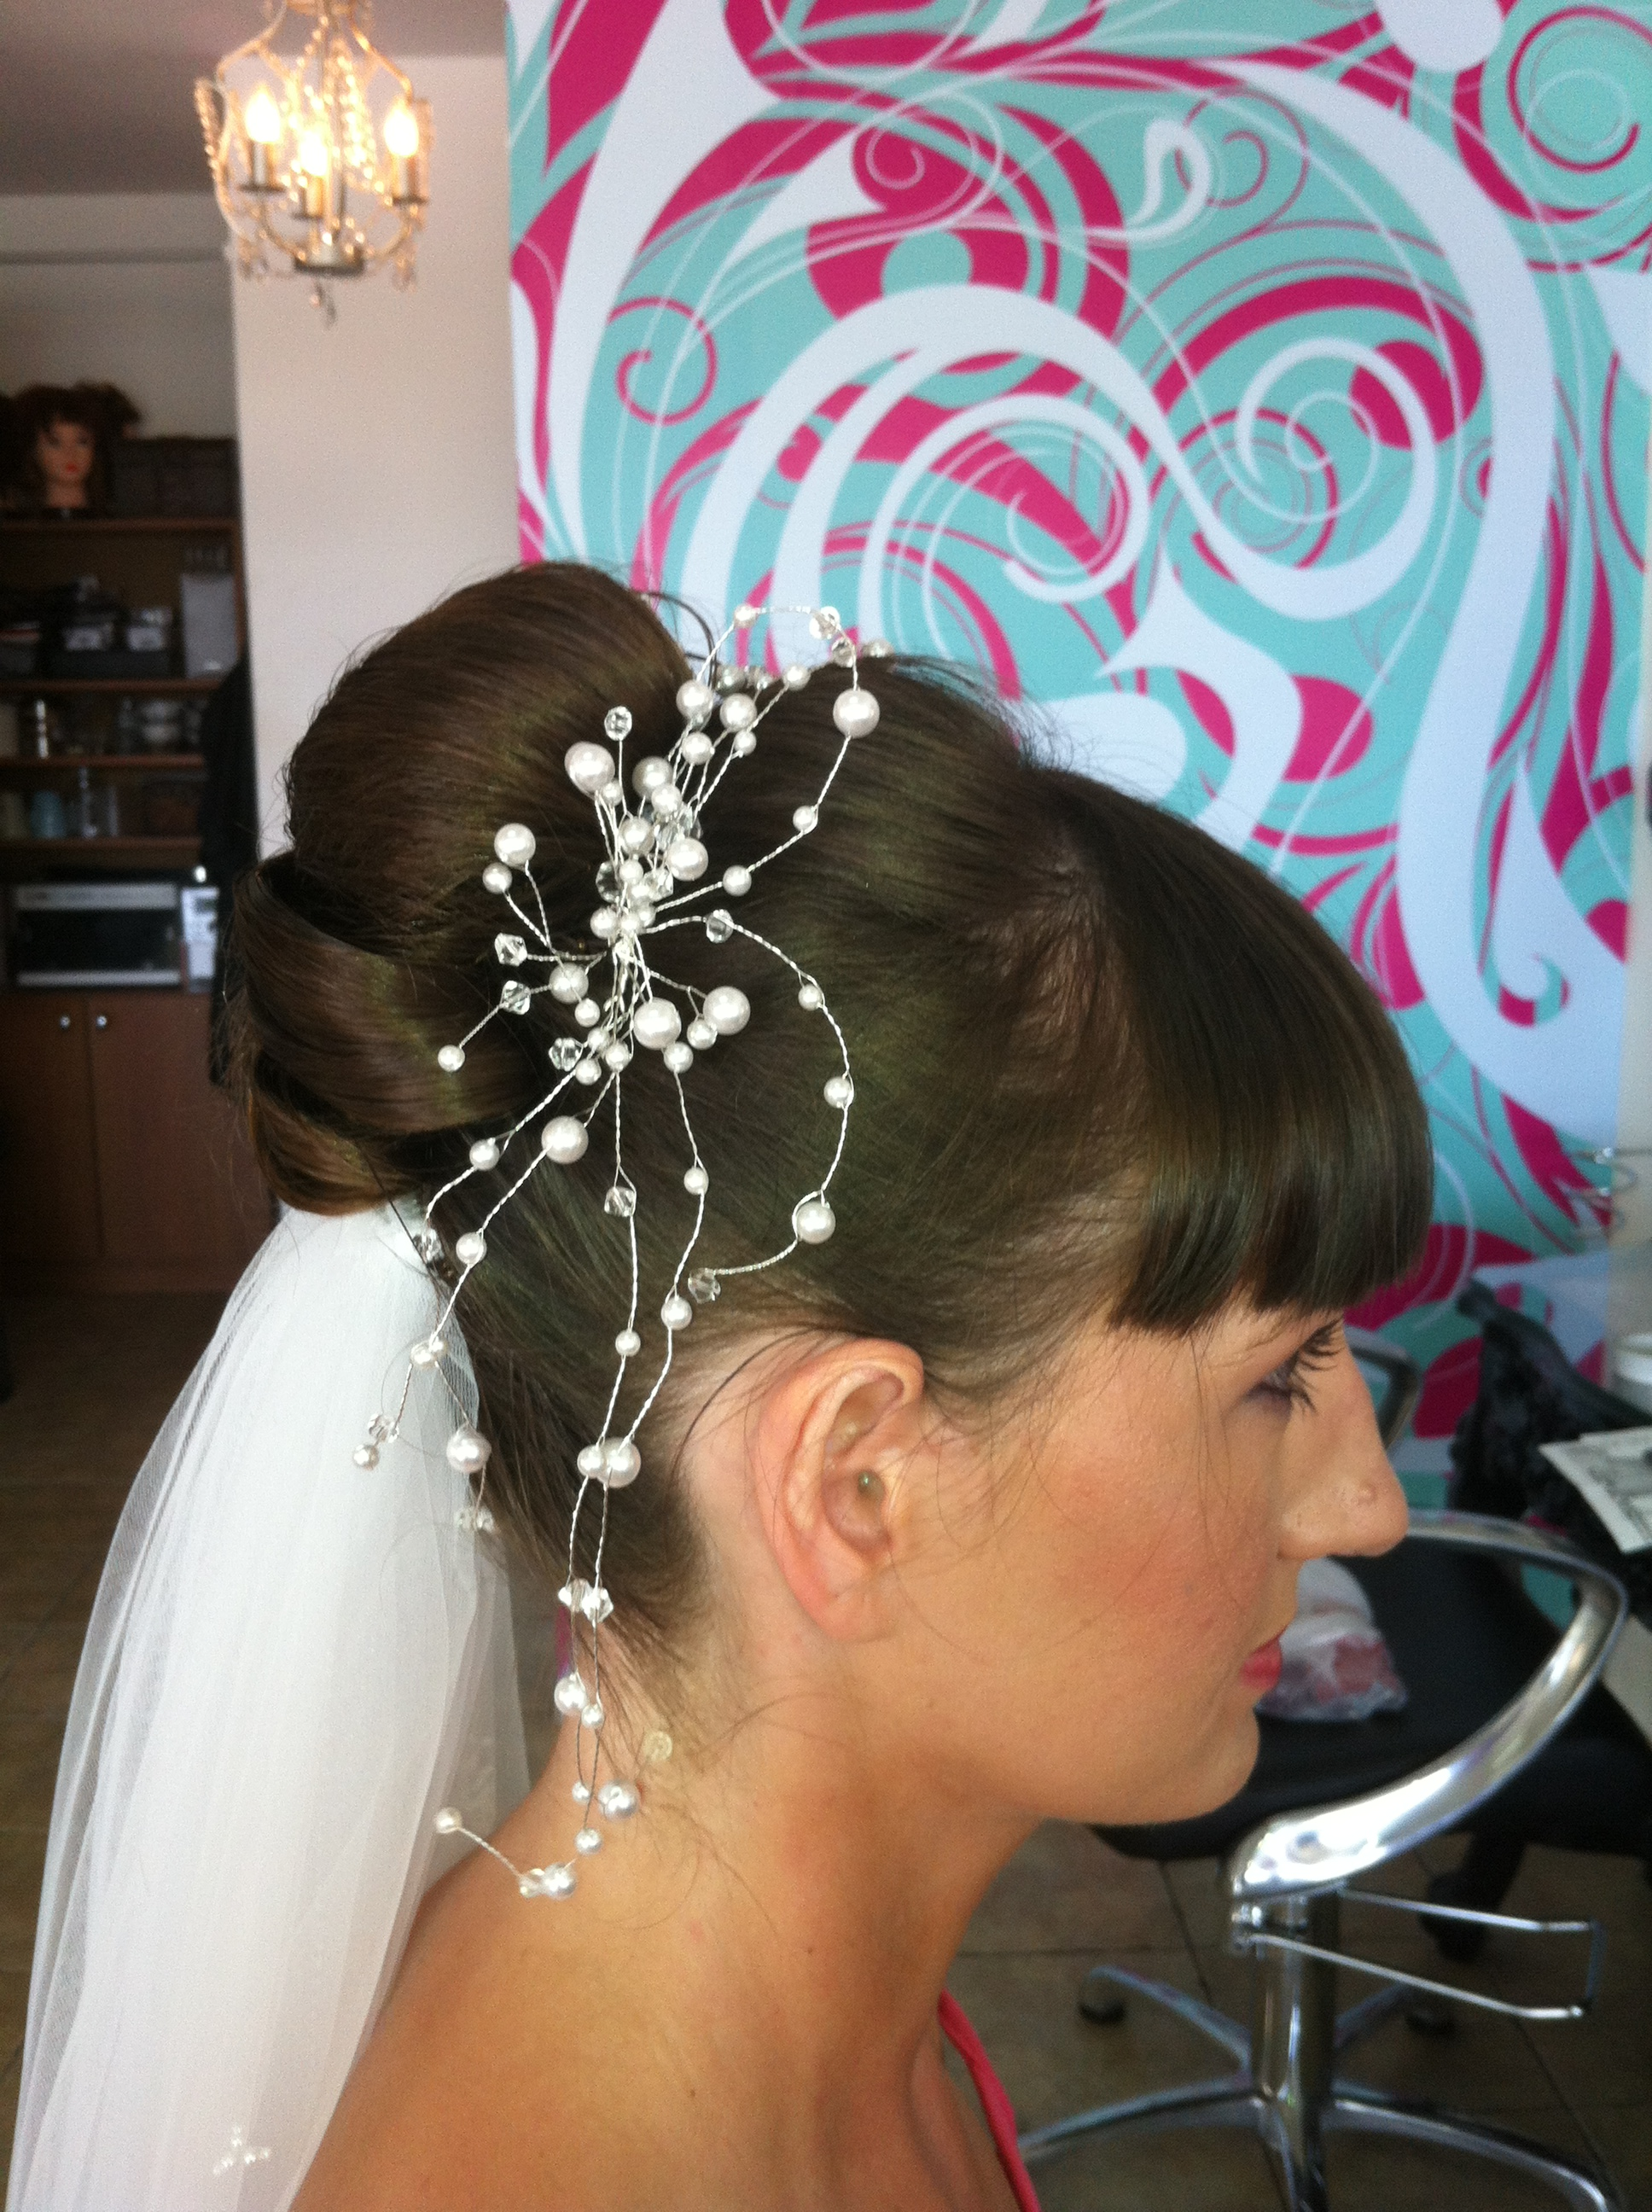 Side View of Bun Up Style with Veil Fitted